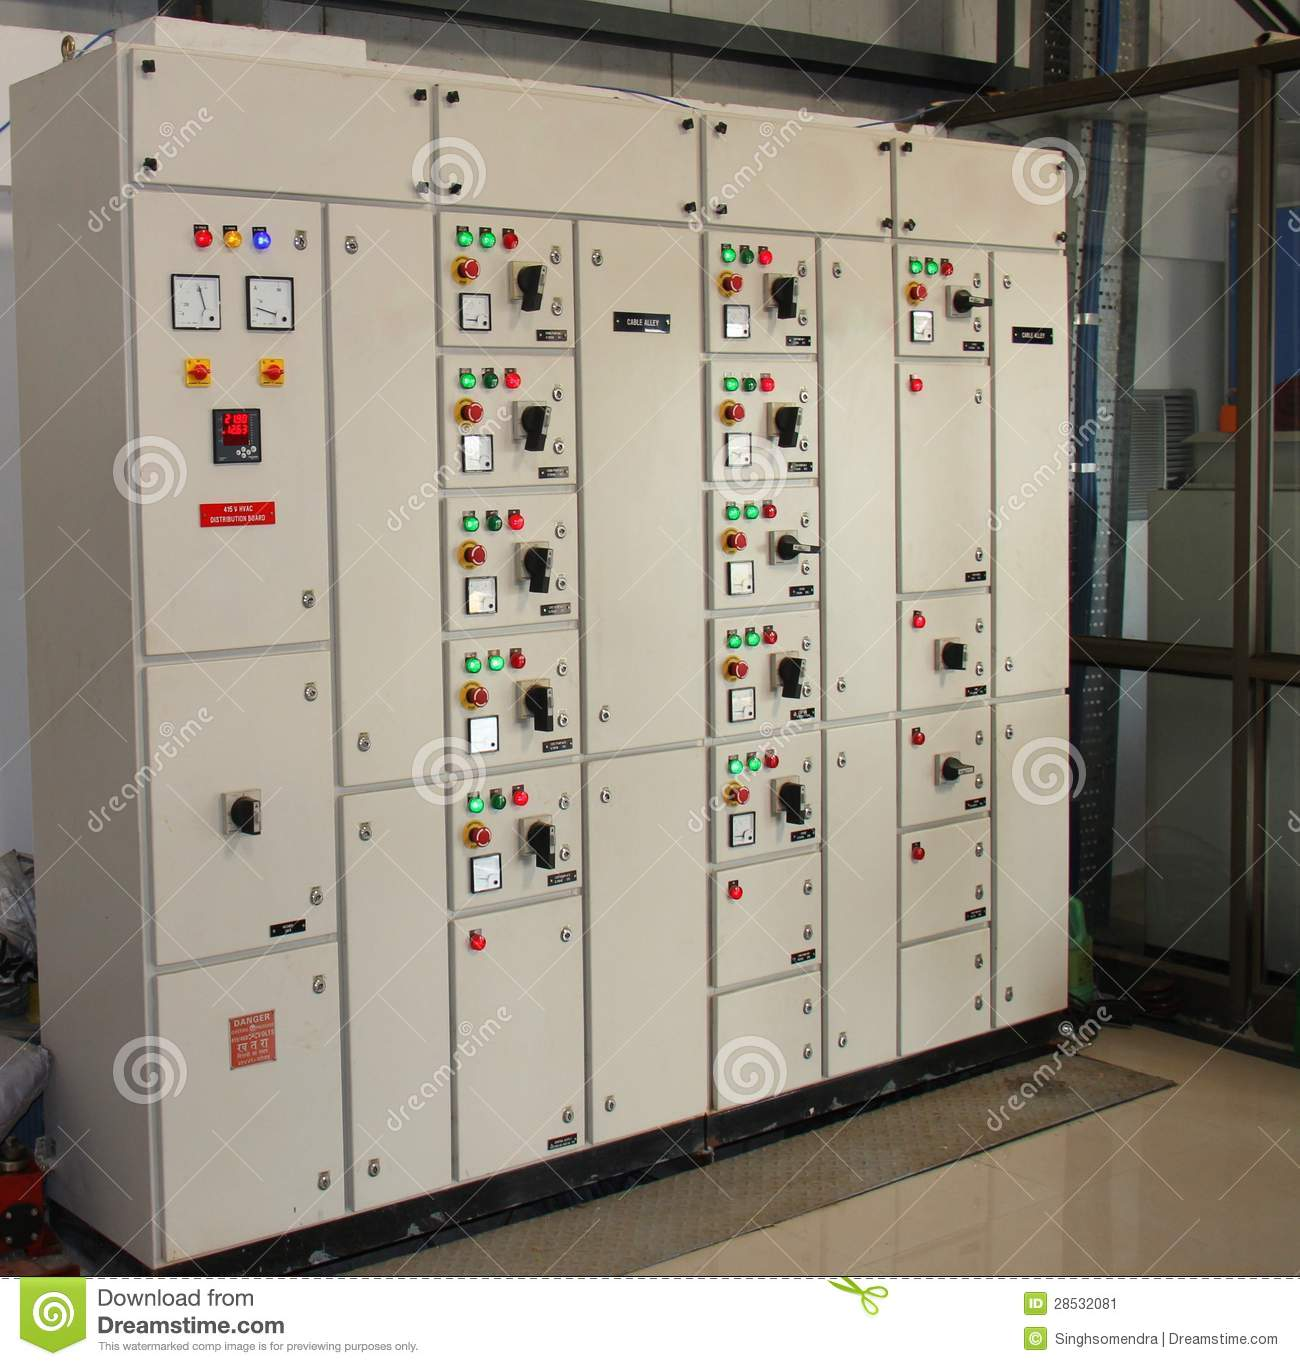 A Main Breaker Panel Wiring Industrial Control Panel Board Stock Image Image 28532081